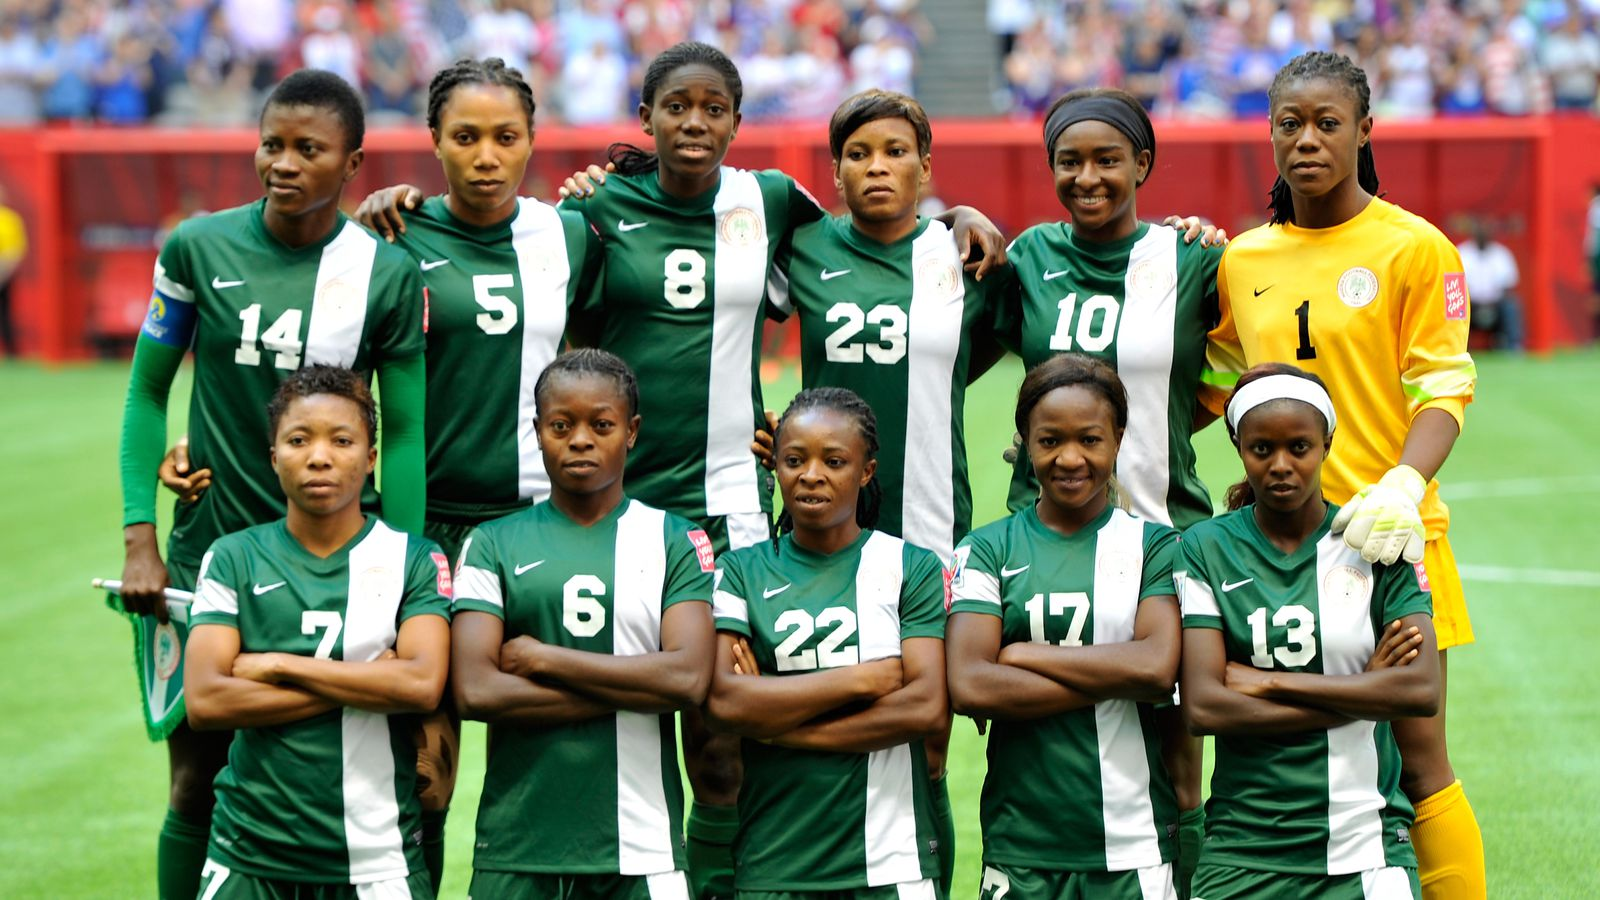 Nigerian Official Says Lesbians Are Ruining His Countrys Soccer Team - Outsports-4456